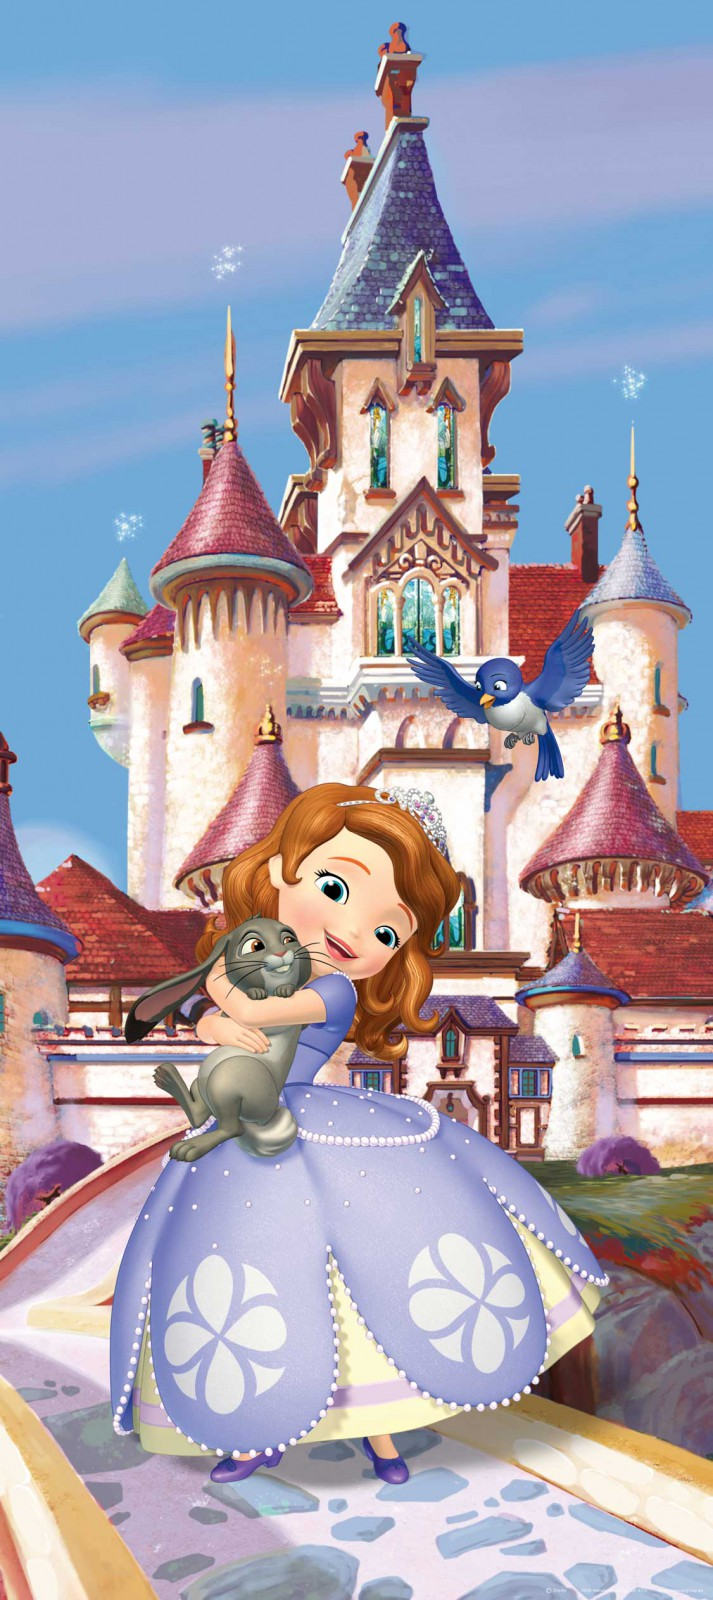 Disney photo wallpaper mural sofia princess 90x202cm for Disney mural wallpaper